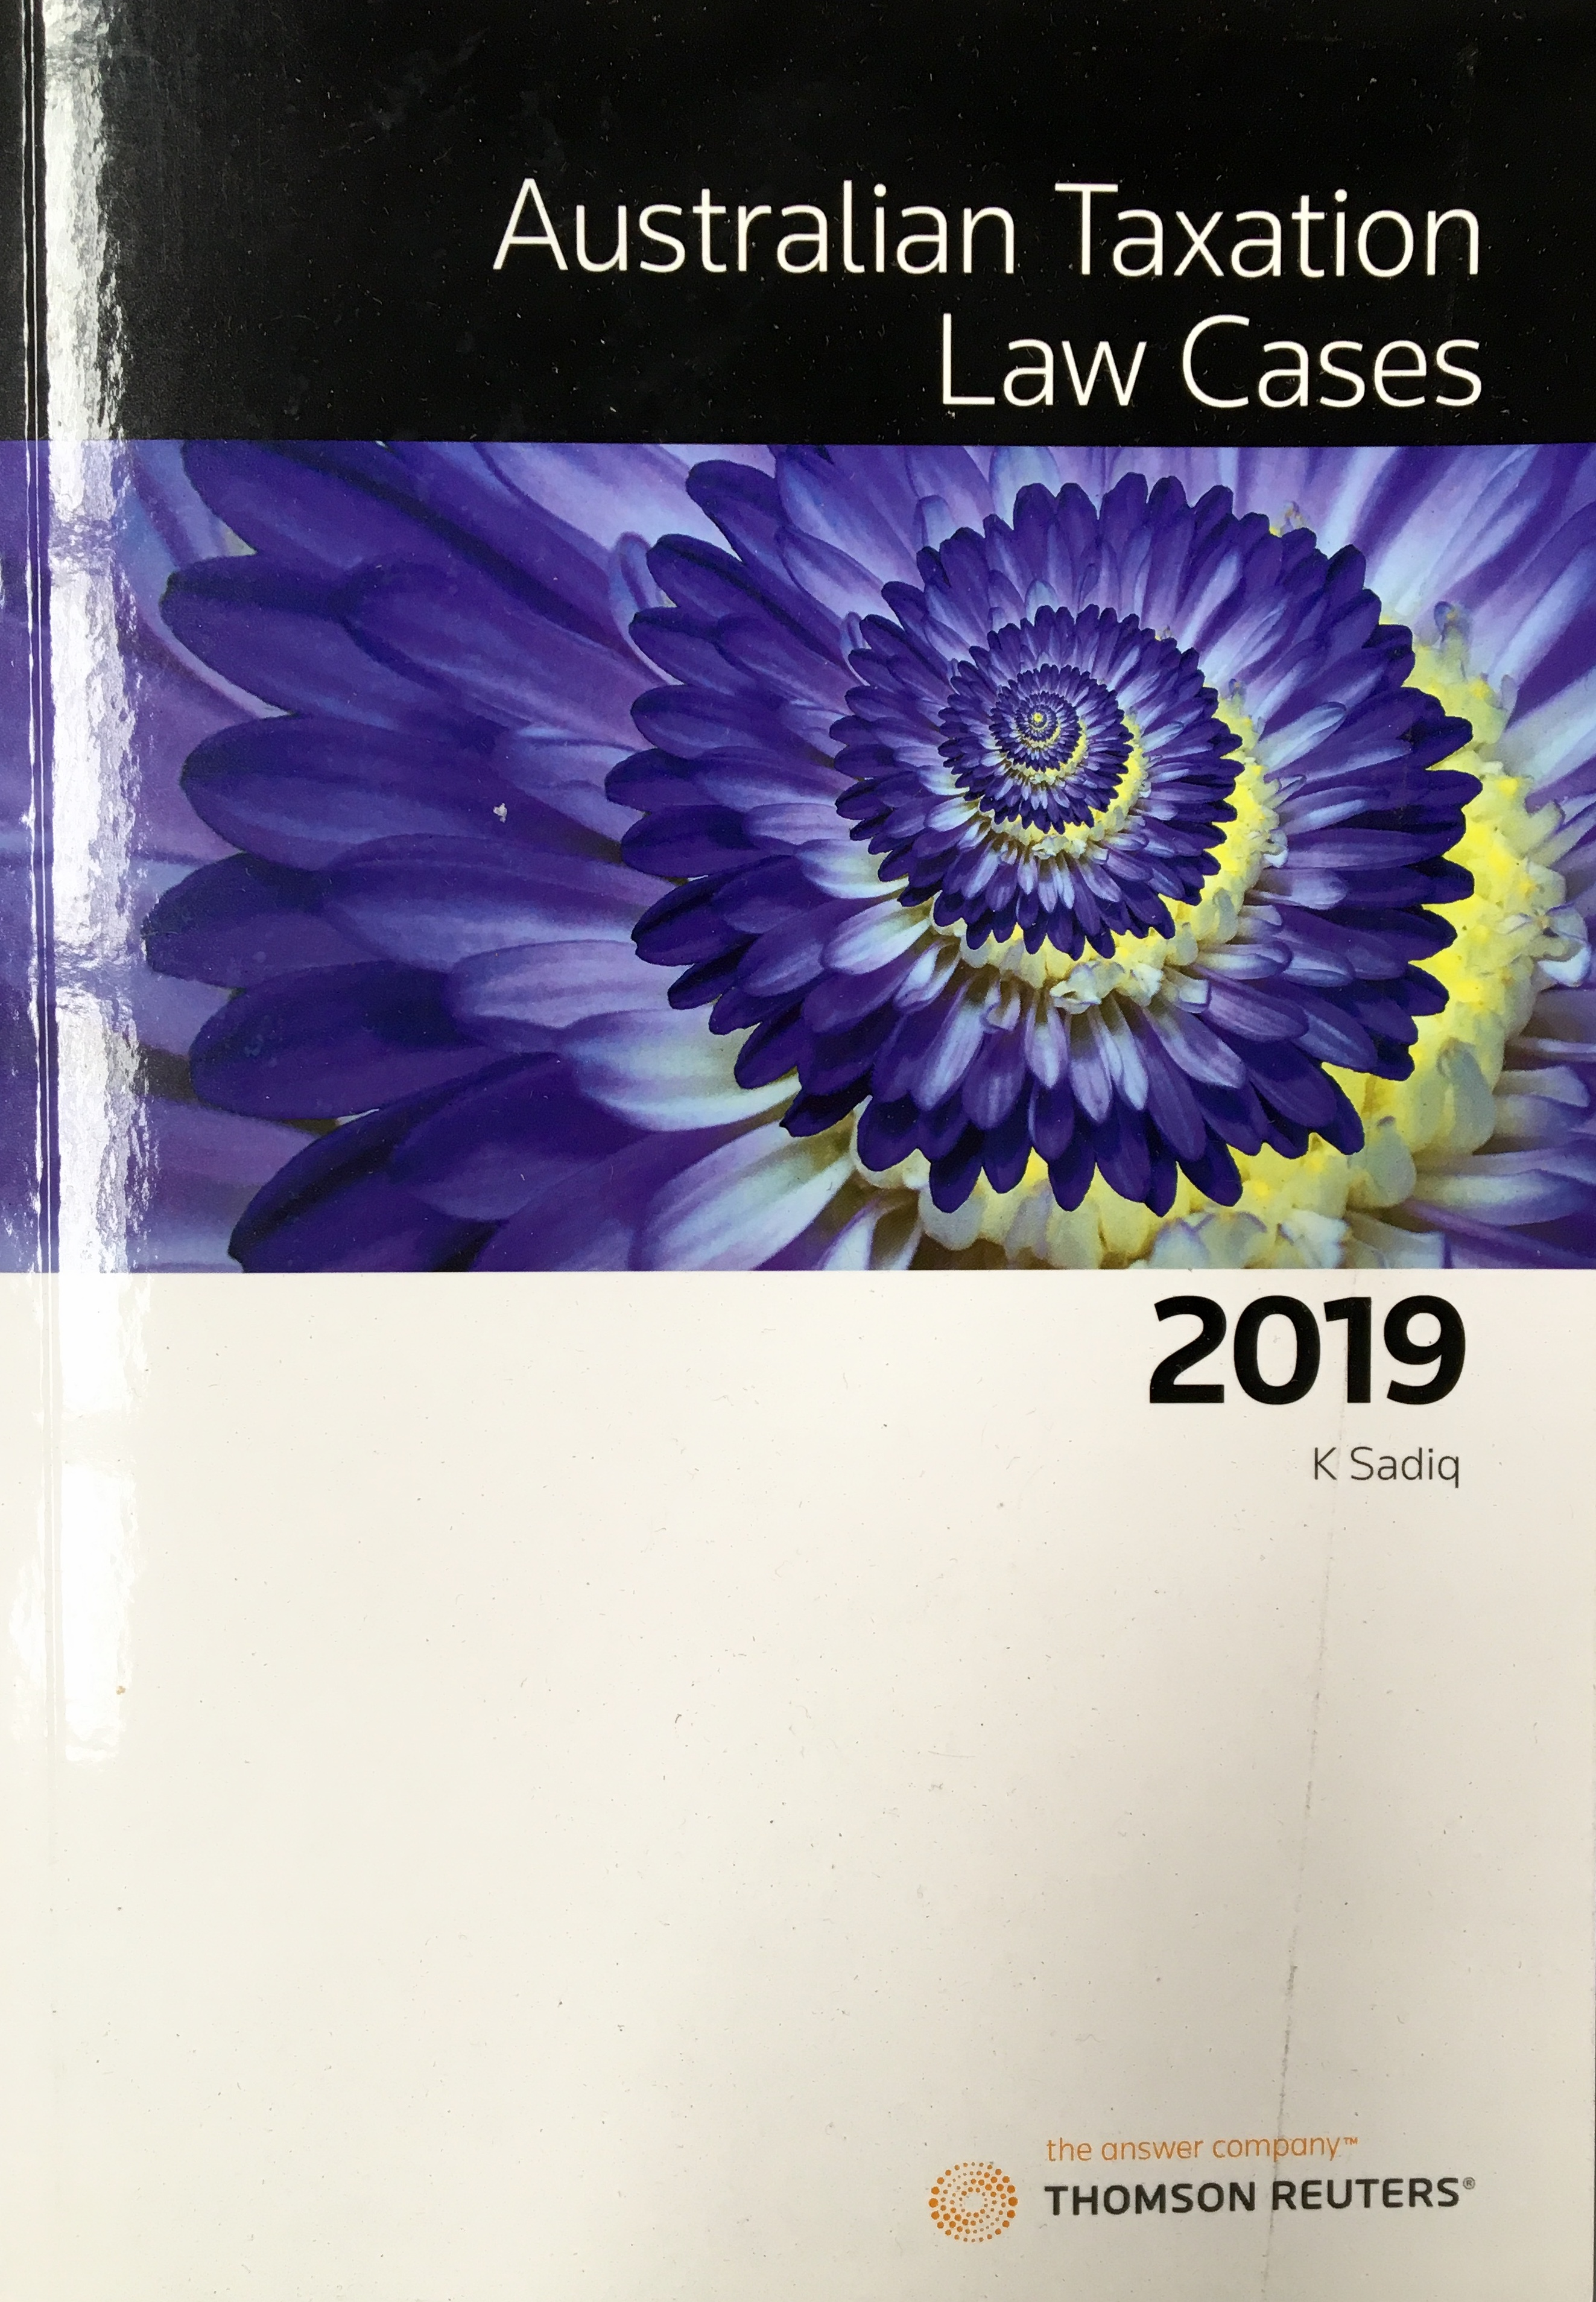 Australian Taxation Law Cases 2019